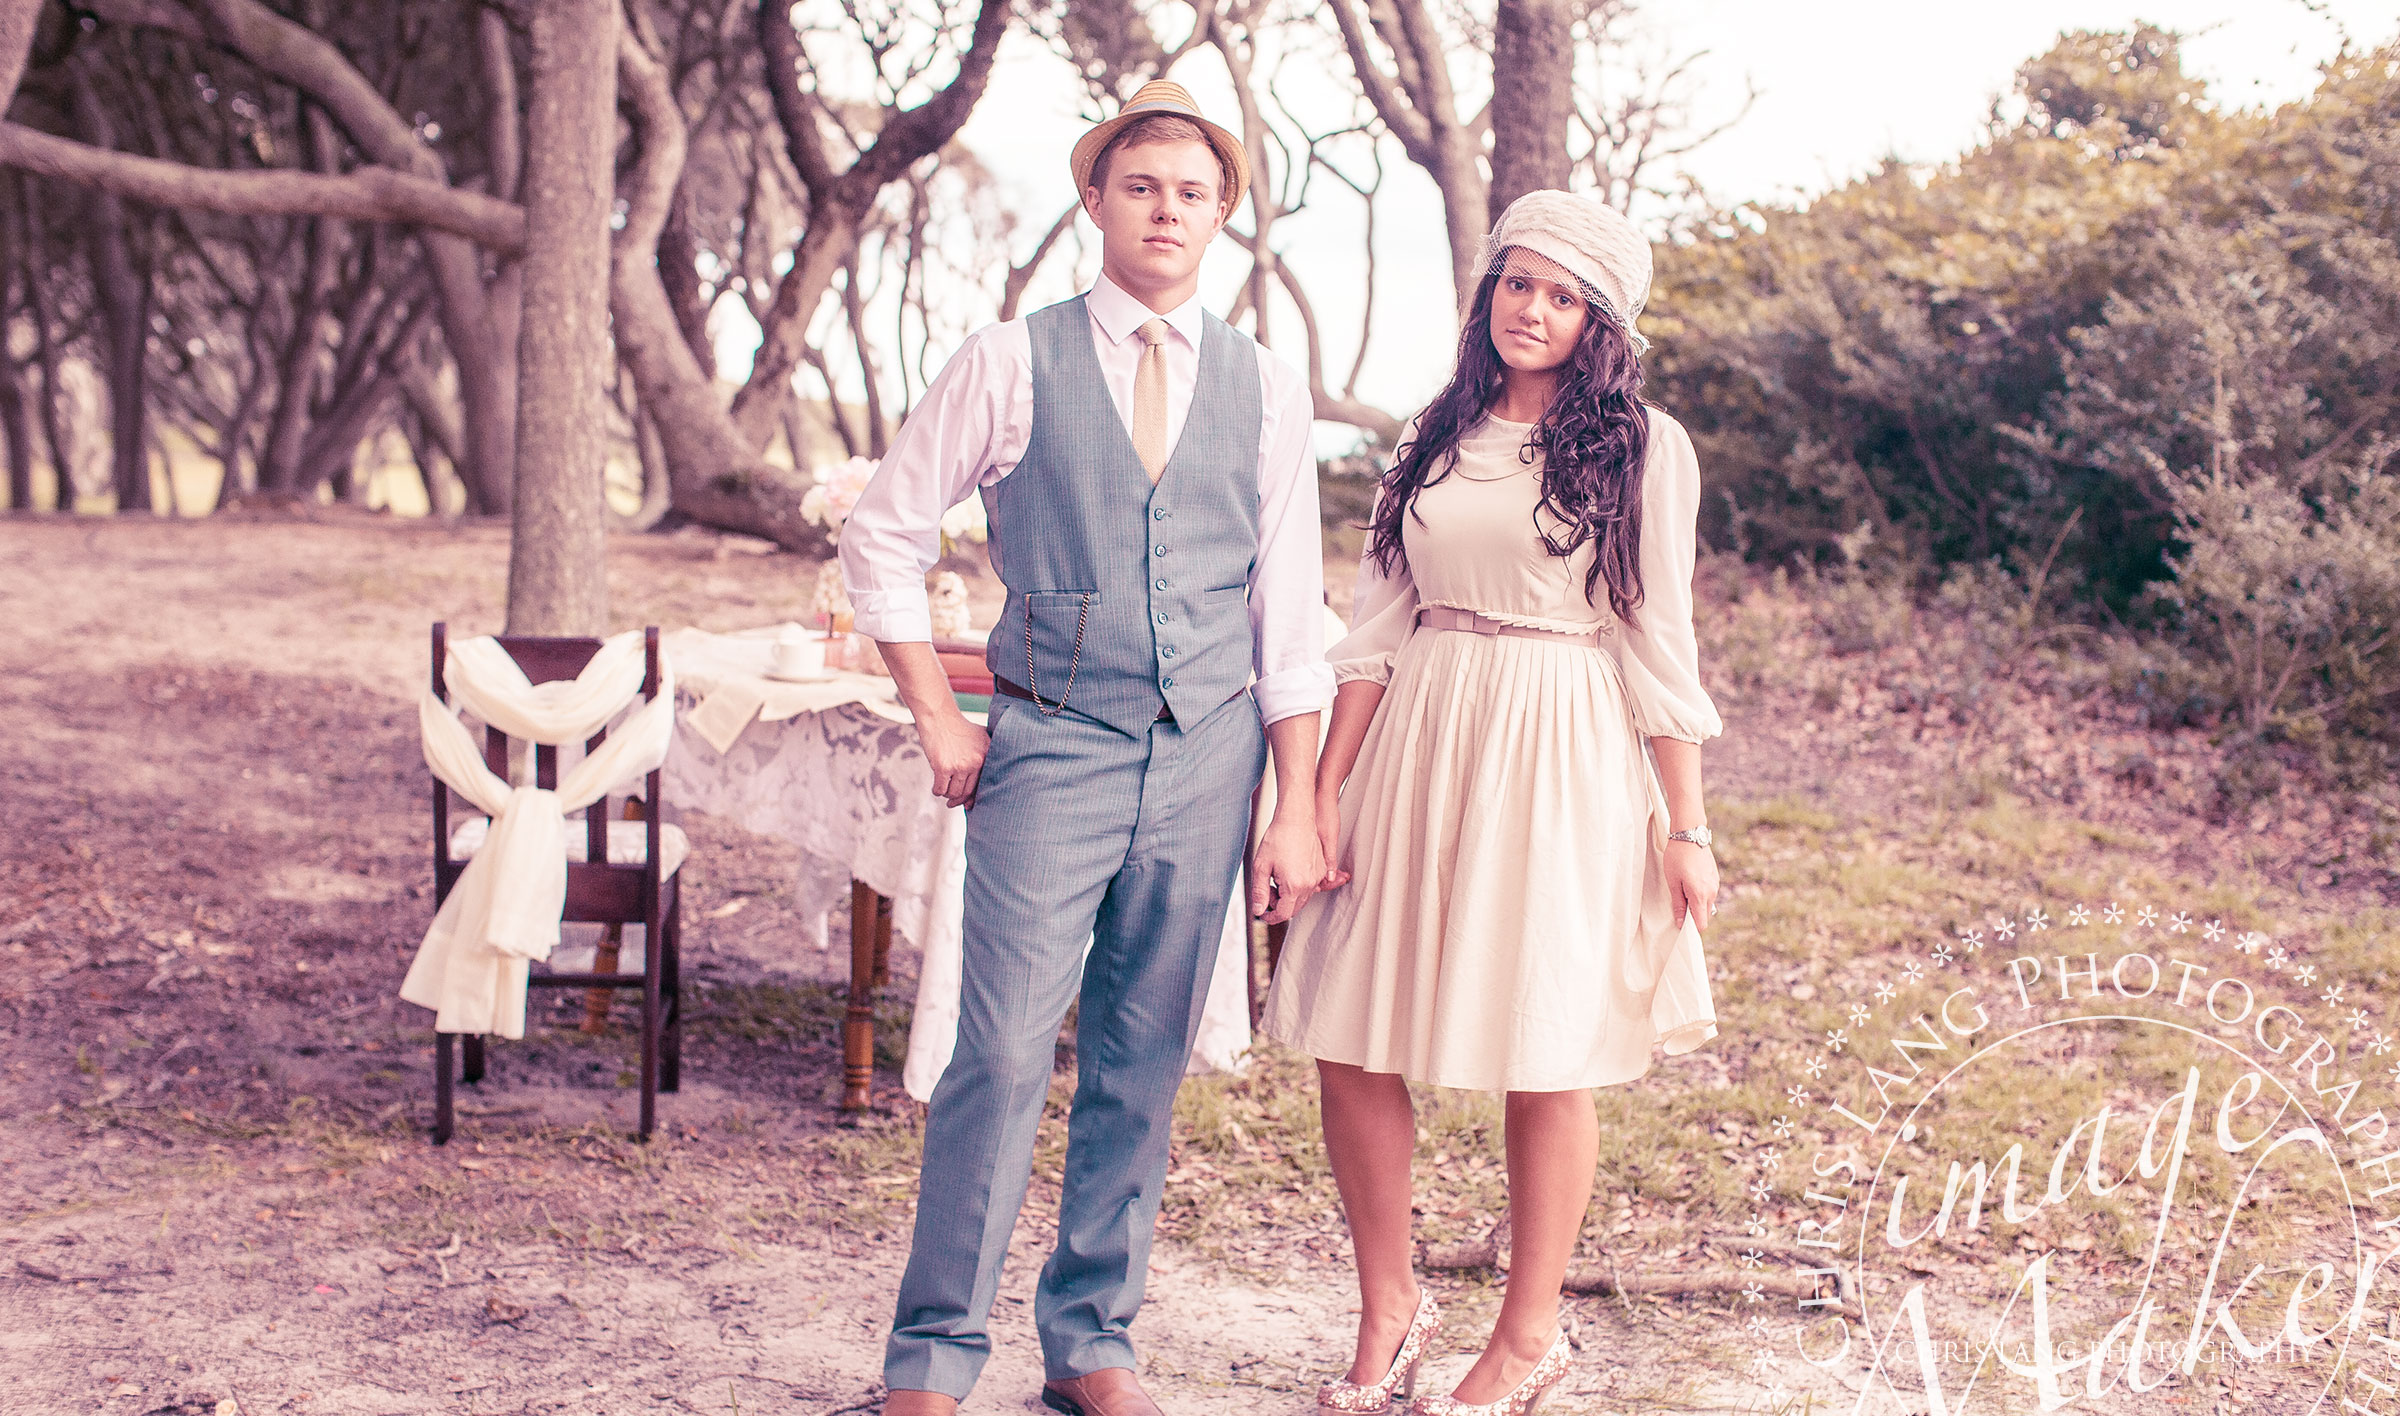 Vintage style photography  Ideas for Vintage Style Engagement Pictures | Styles & Inspiration ...